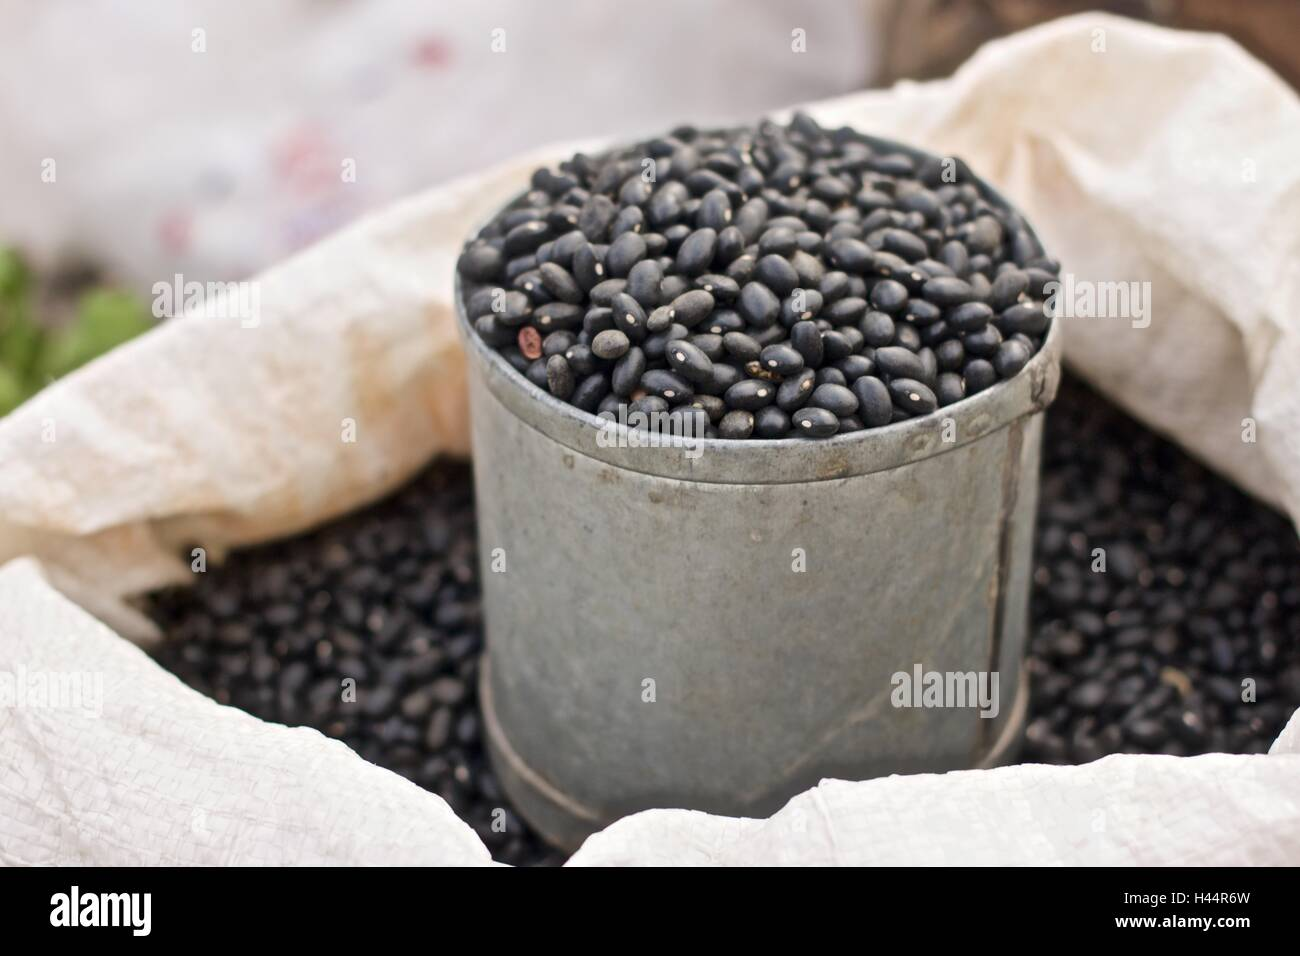 Black bean in can bag at the market - Stock Image